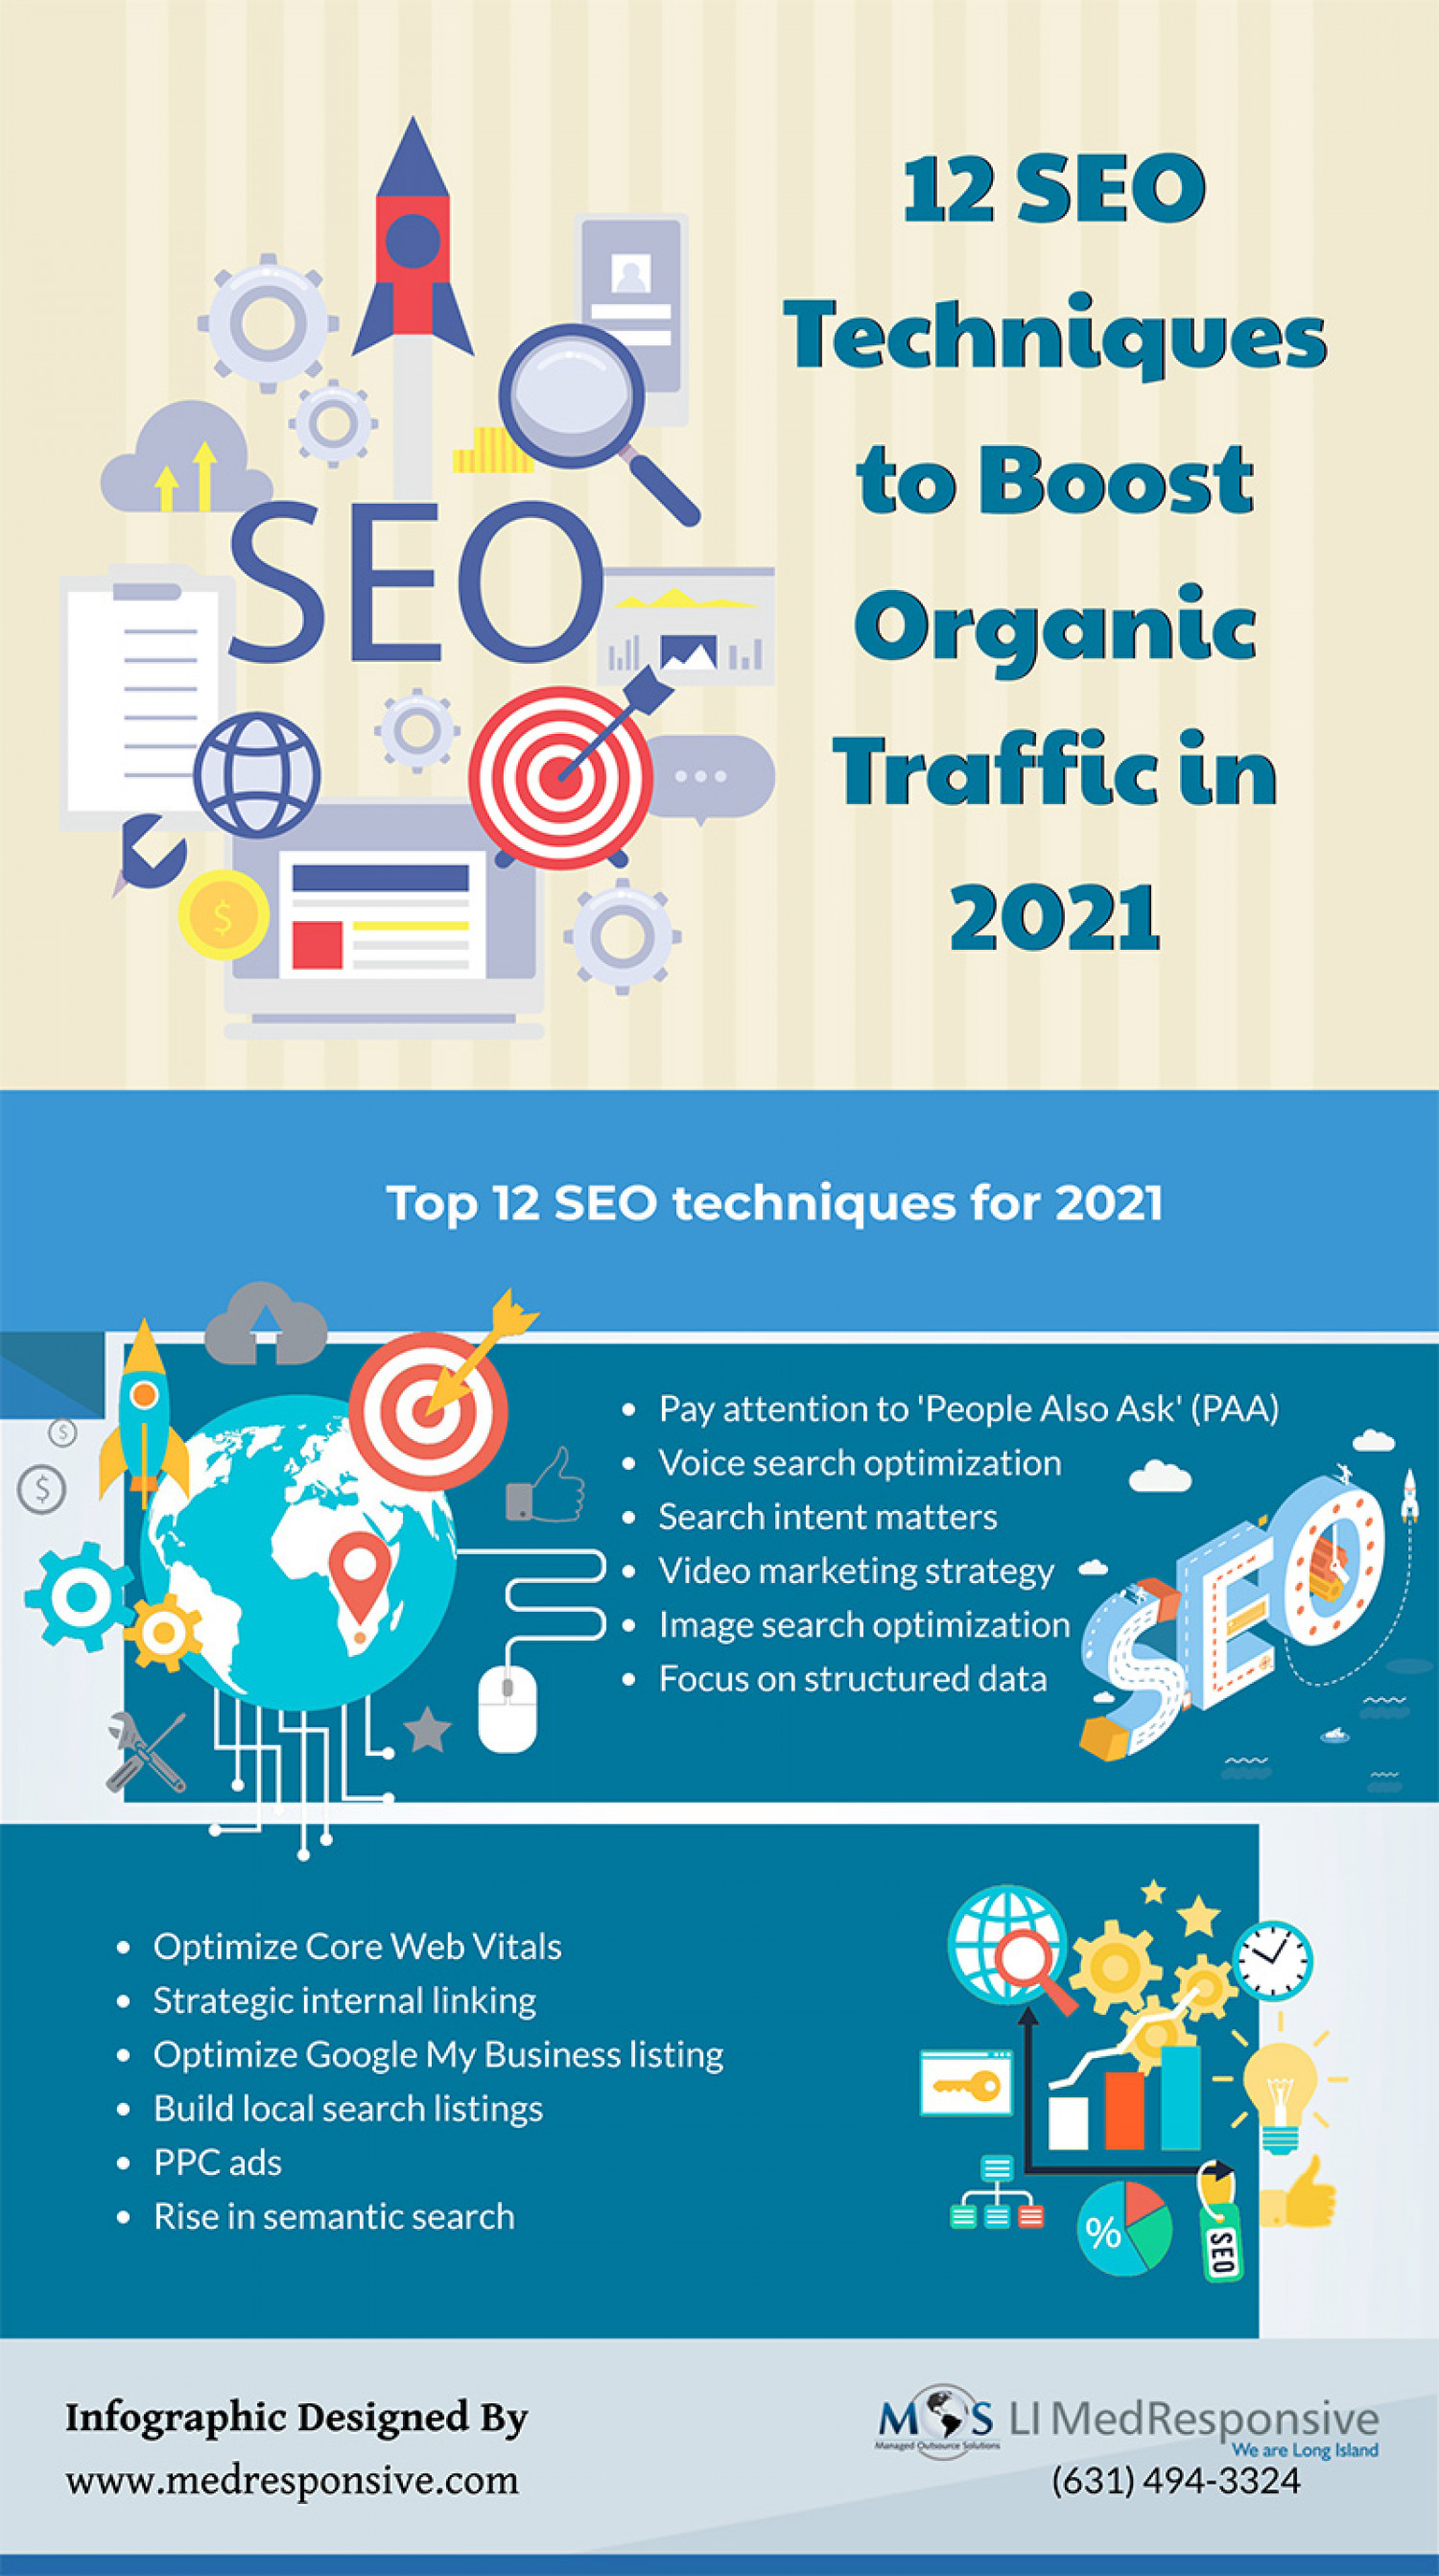 12 SEO Techniques to Boost Organic Traffic in 2021 [Infographic] Infographic